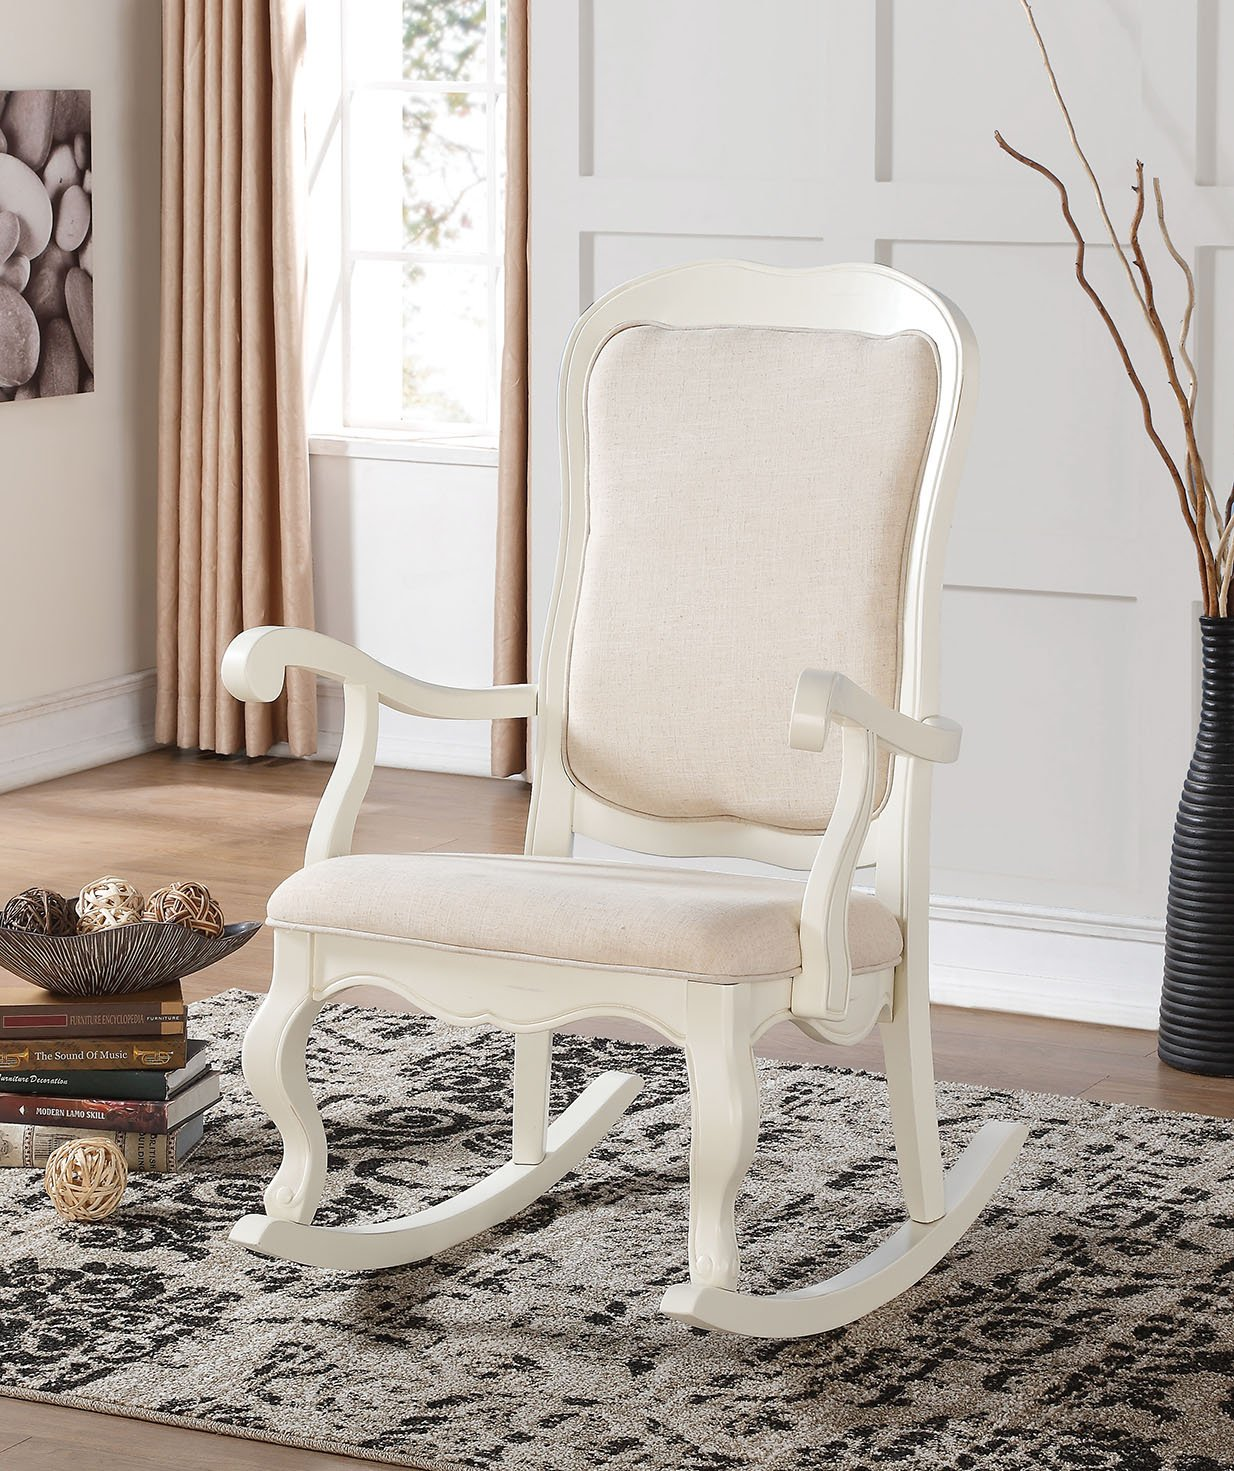 ACME Furniture 59388 Sharan Rocking Chair - Antique white